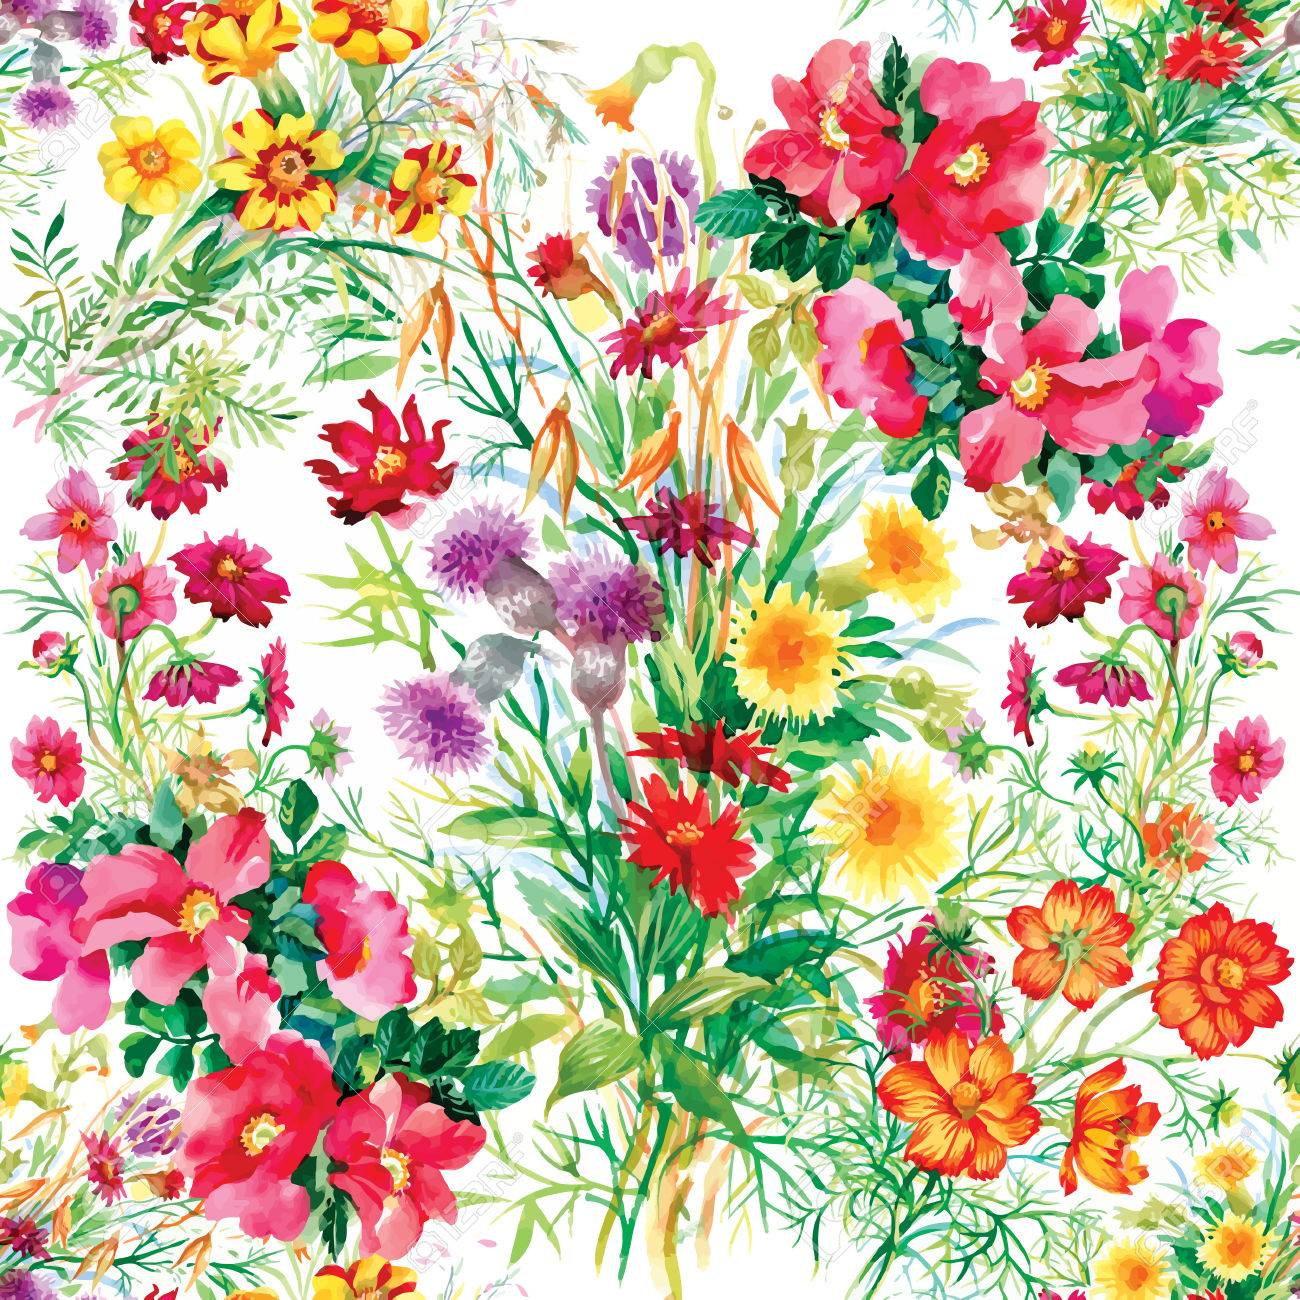 Colorful garden flowers Seamless pattern on white background - 40272702